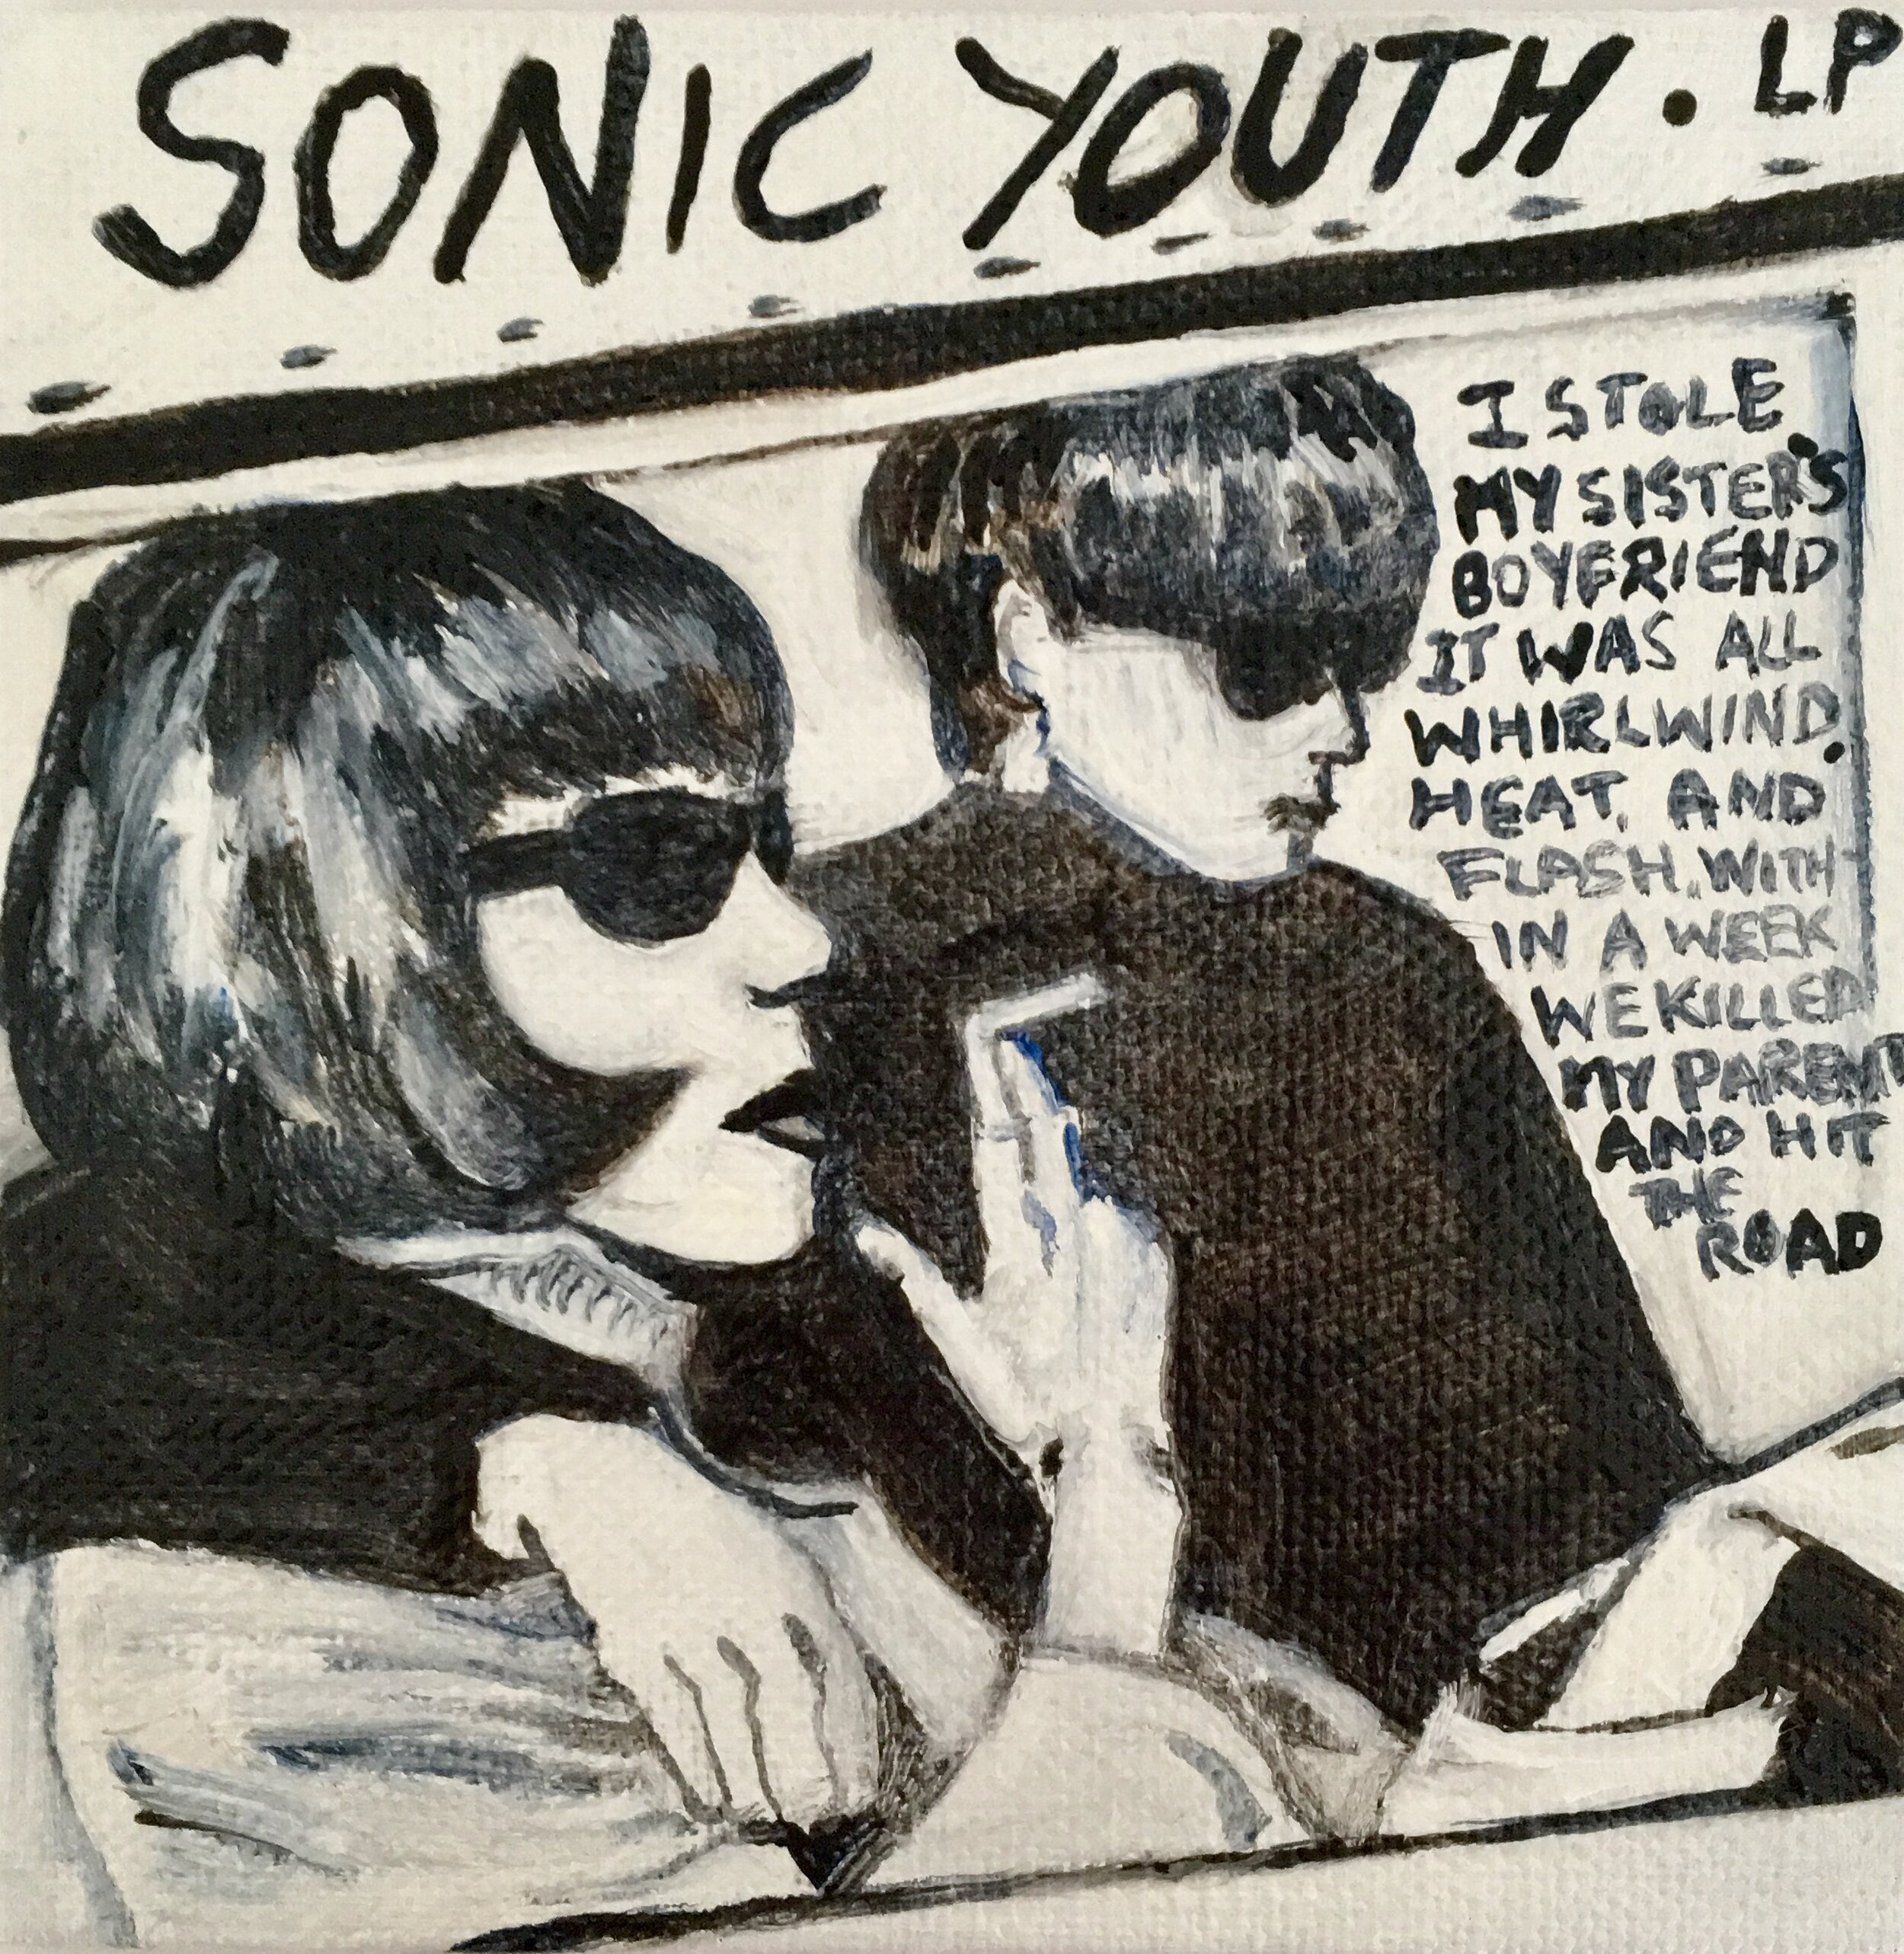 Sonic Youth.jpeg